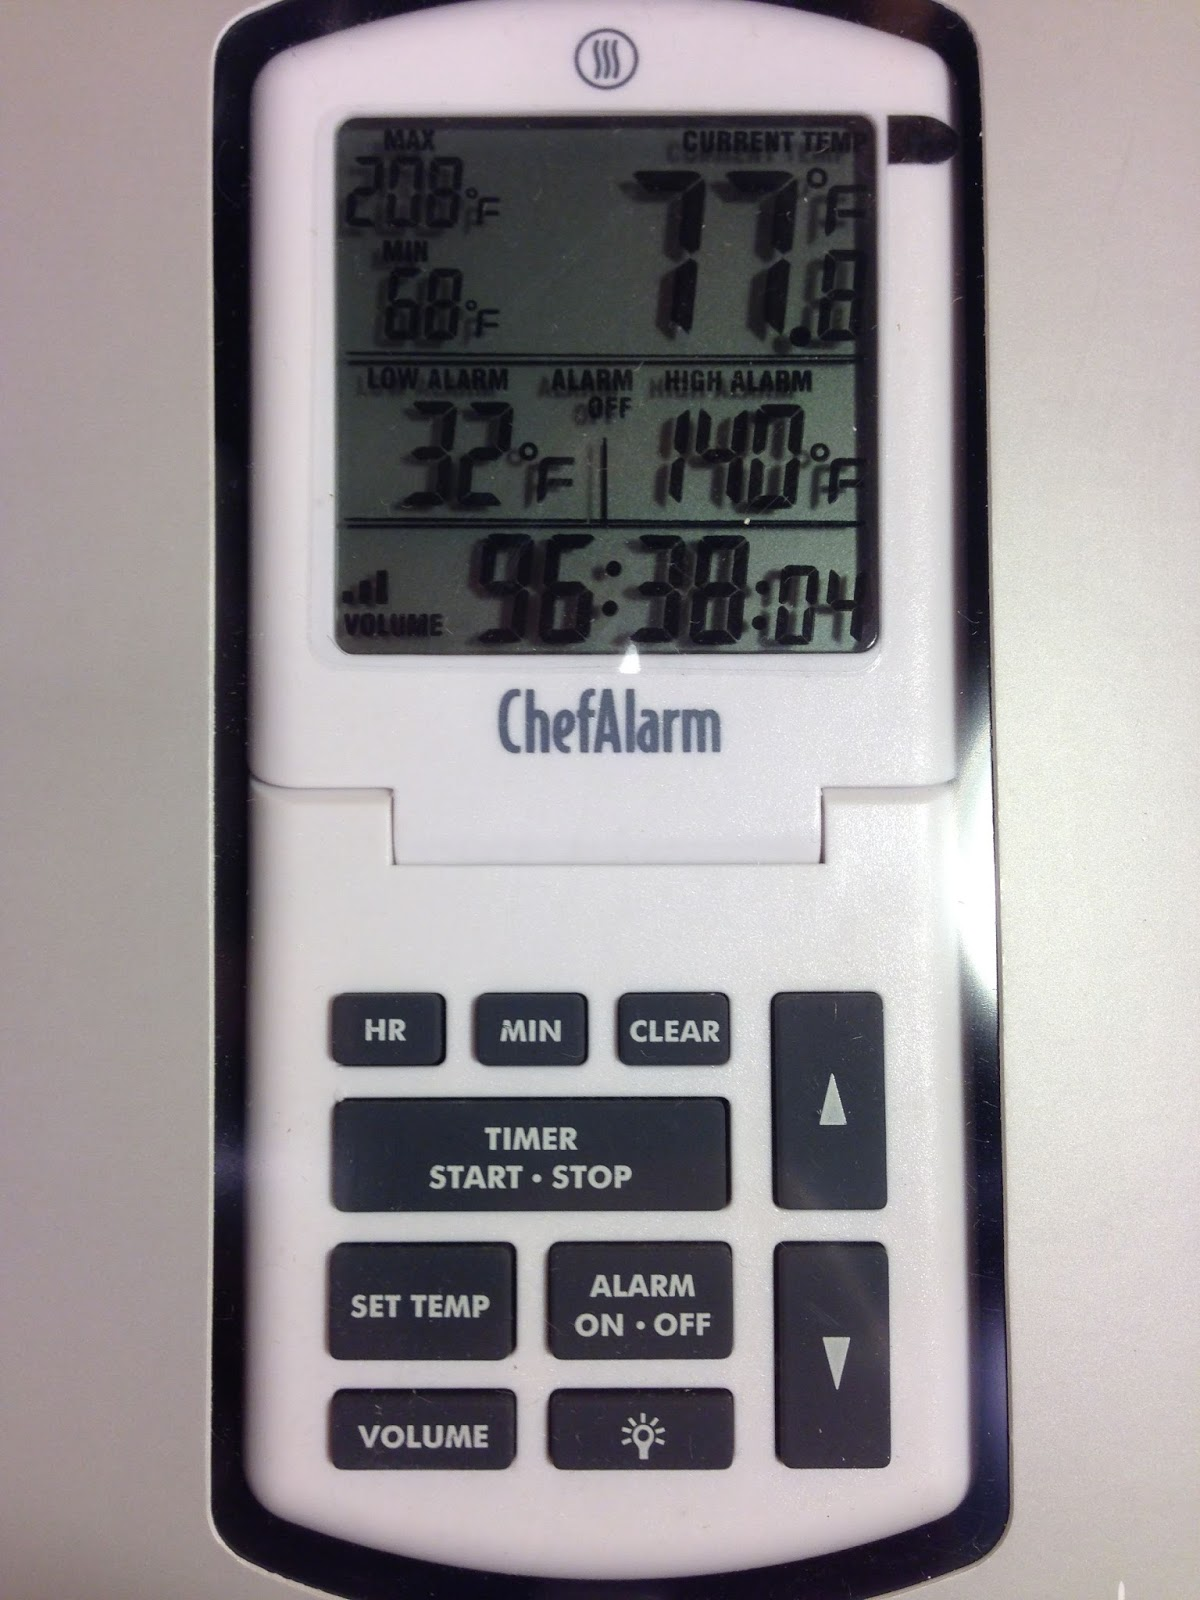 Hands On Review Chefalarm Thermometer And Timer Homebrew Finds